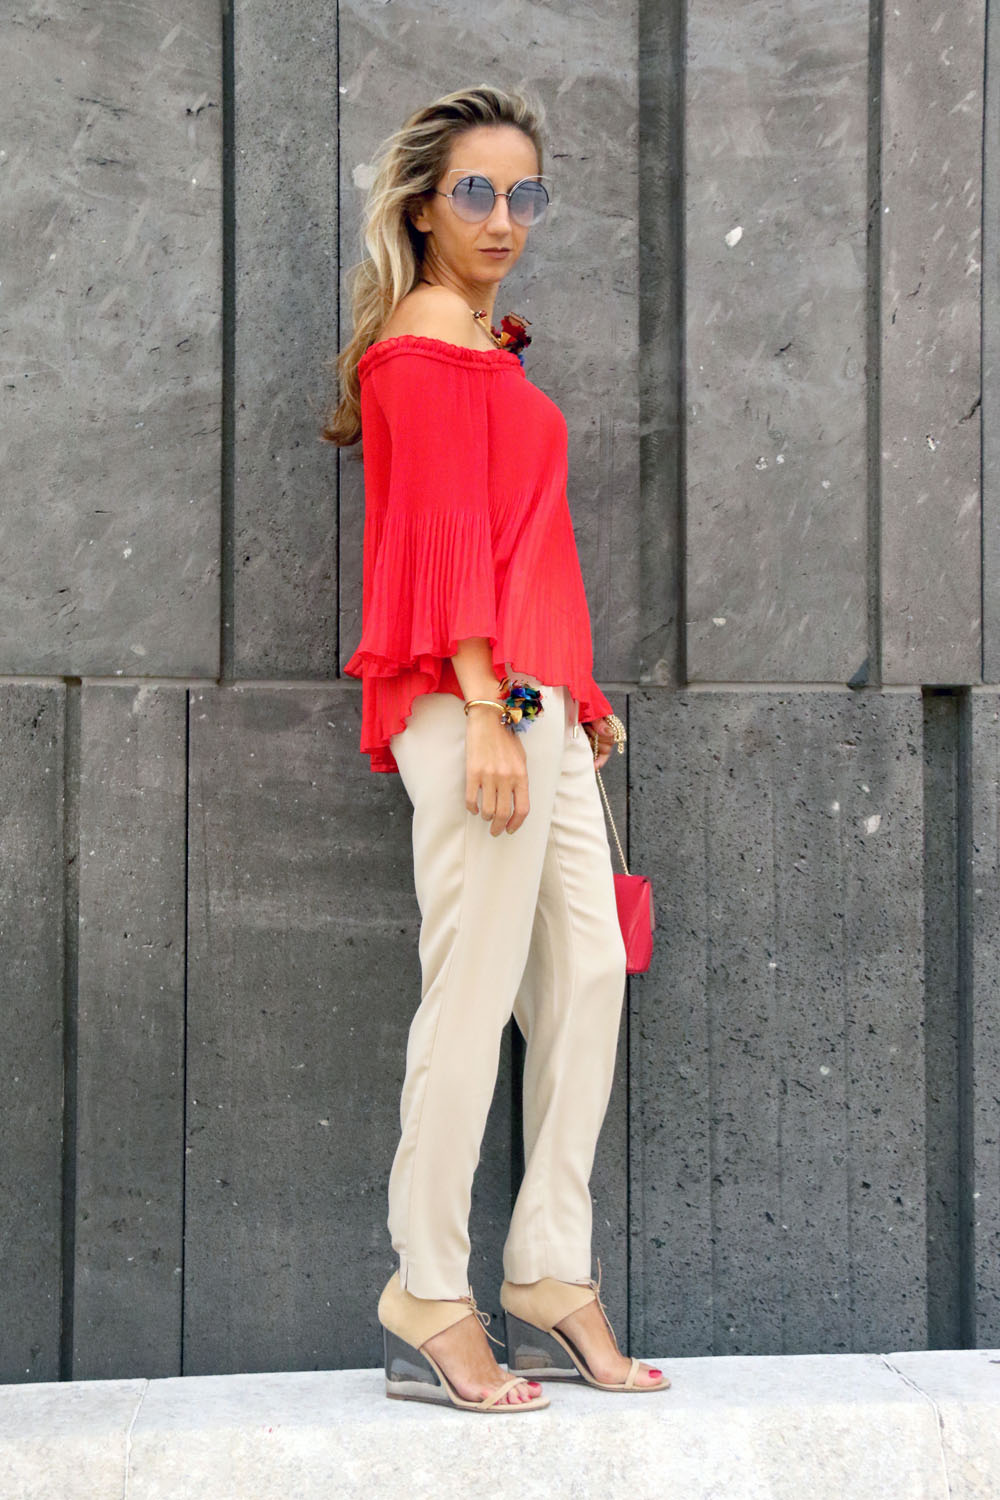 colourclub-modeblog-outfit-off-the-shoulder-top-burberry-shoes-furla-bag-thai-silk-juwelery-ornaments-lor2